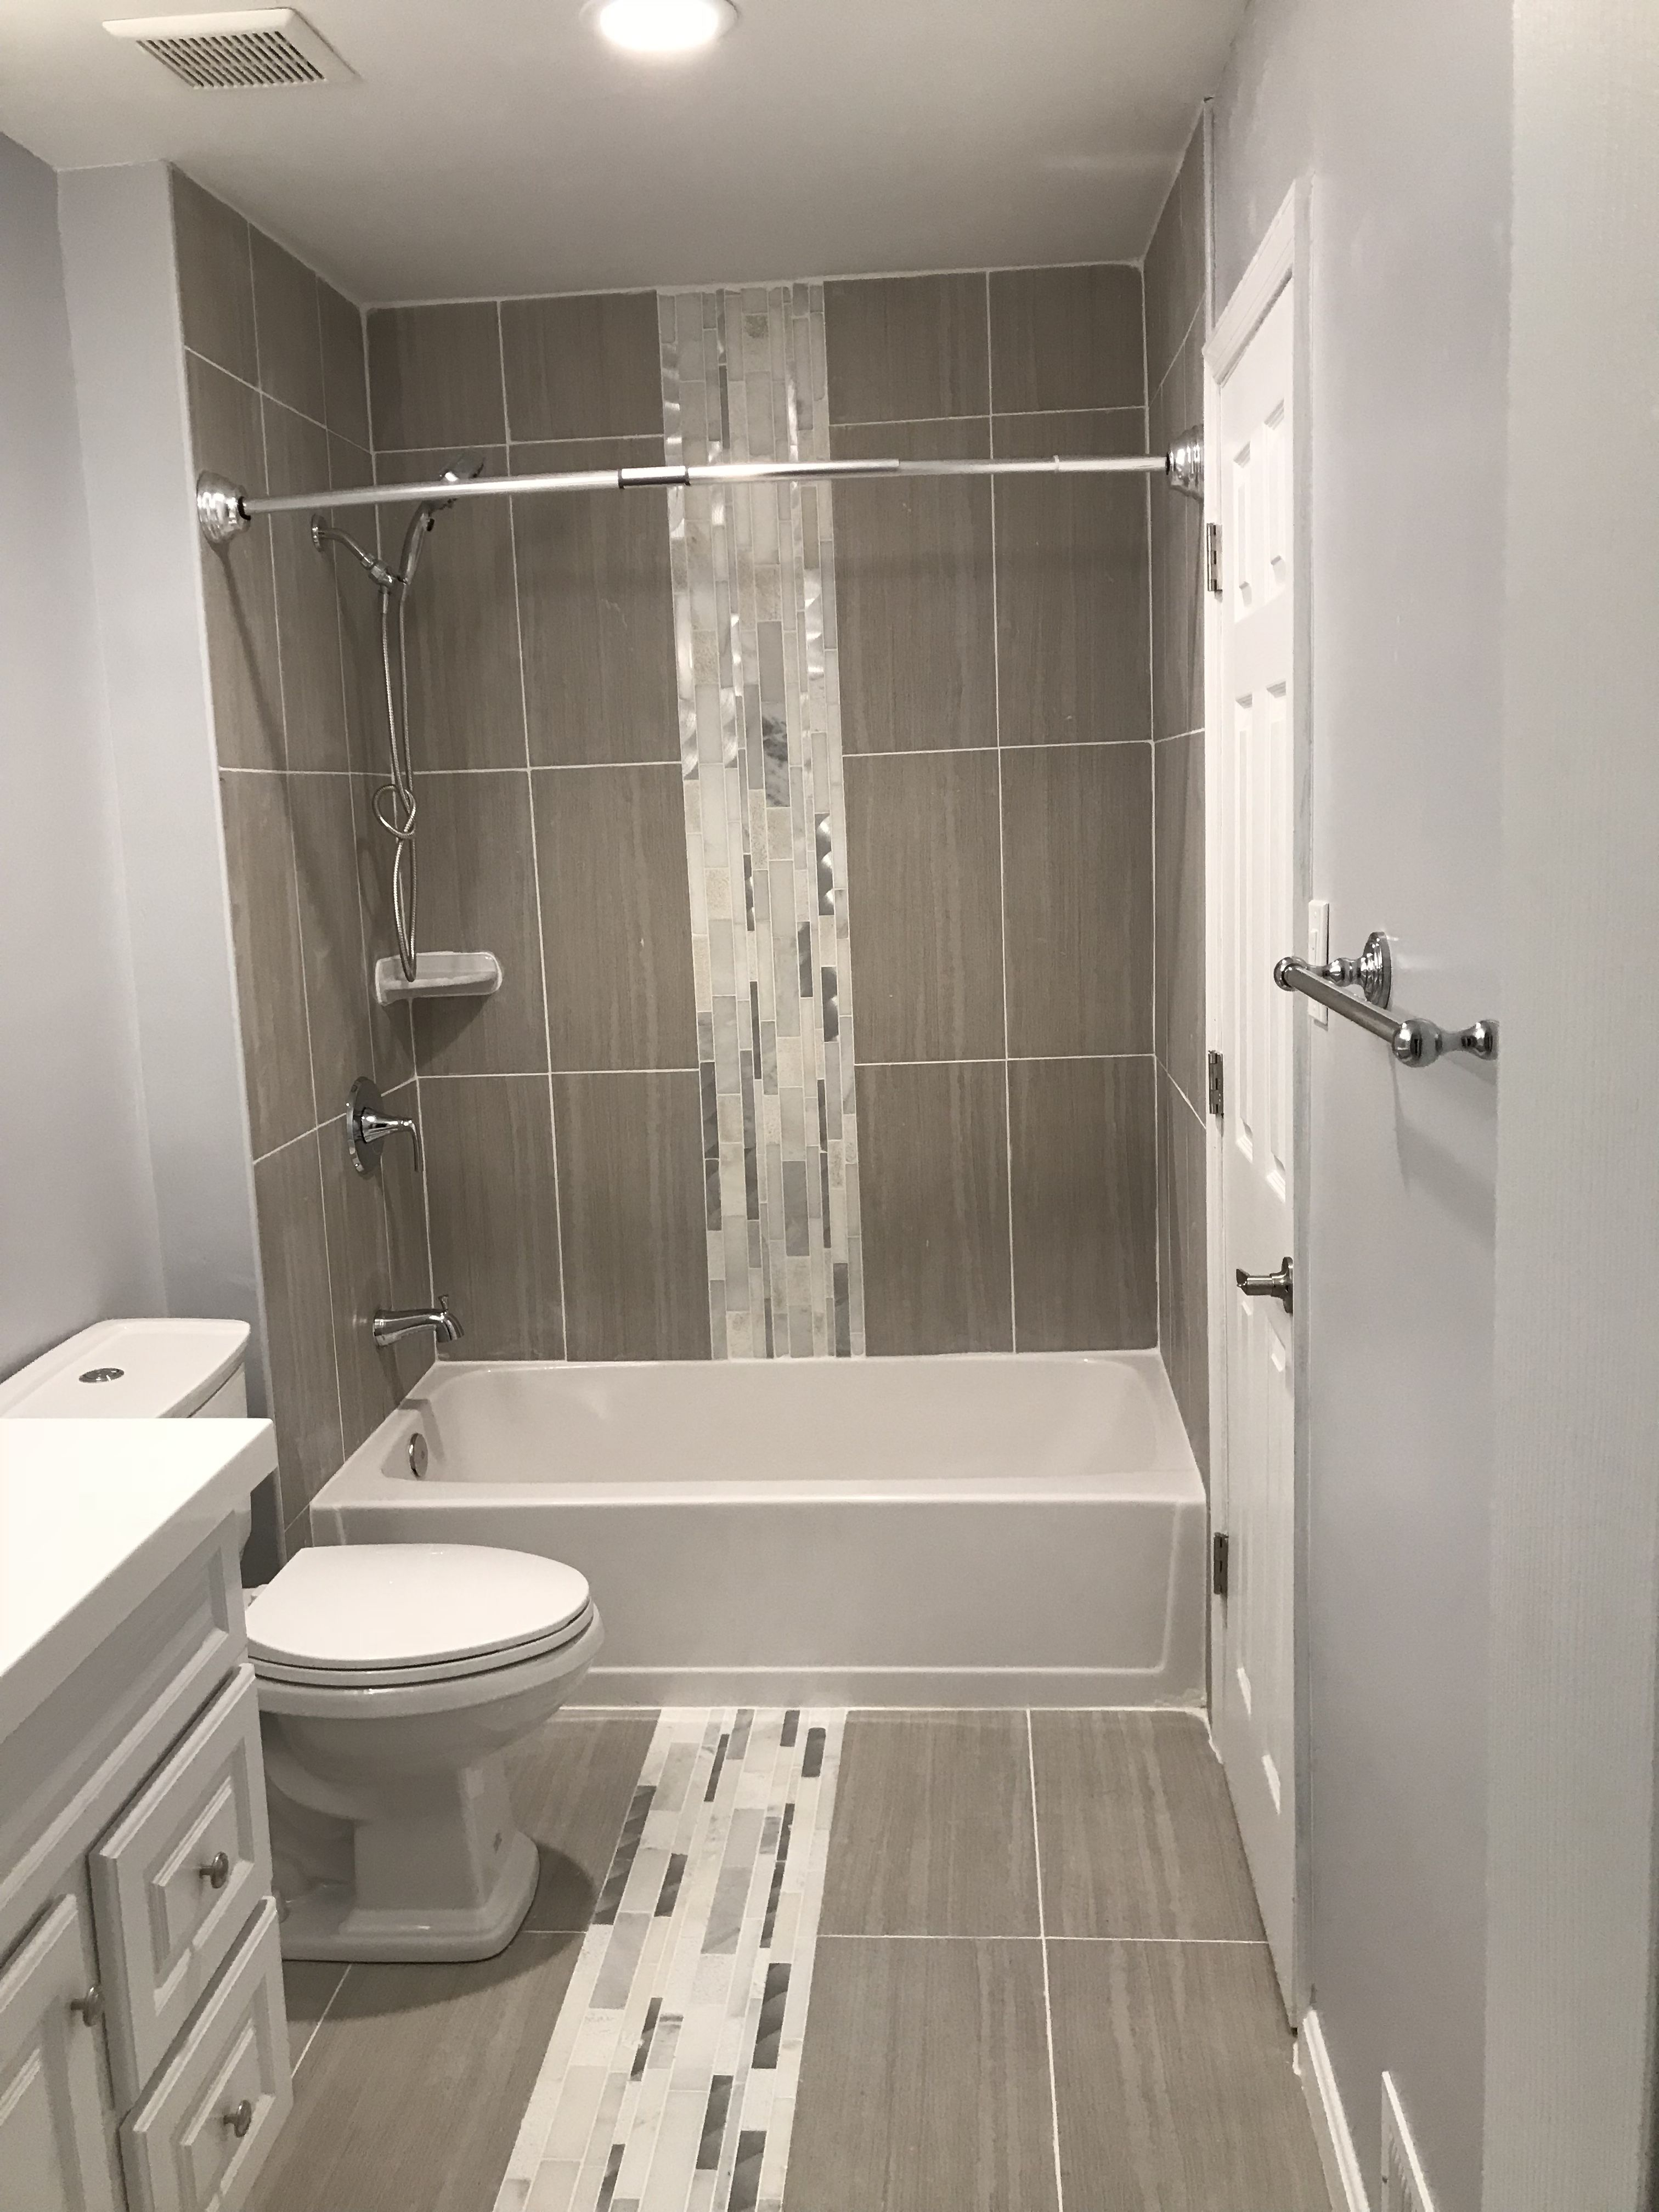 Finished Bathroom Small Ideas In 2019